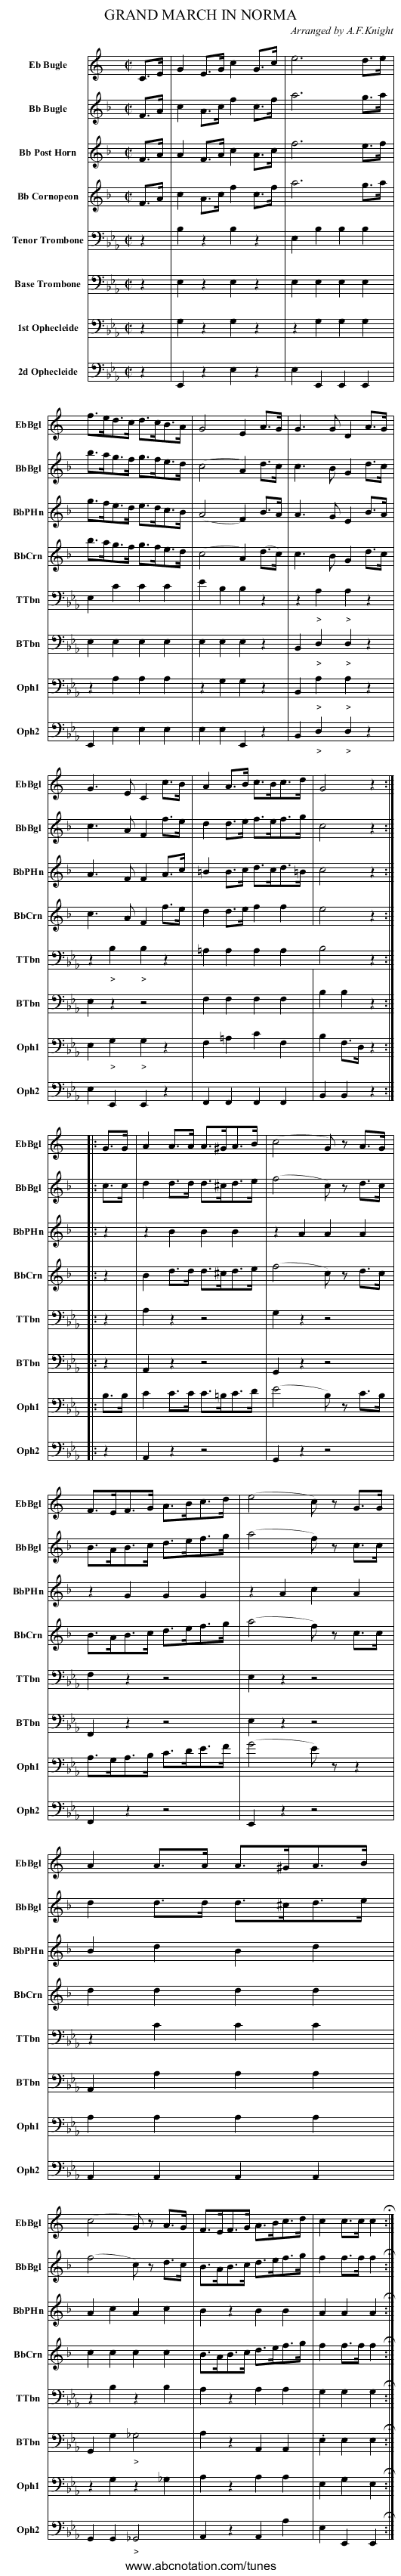 GRAND MARCH IN NORMA - staff notation